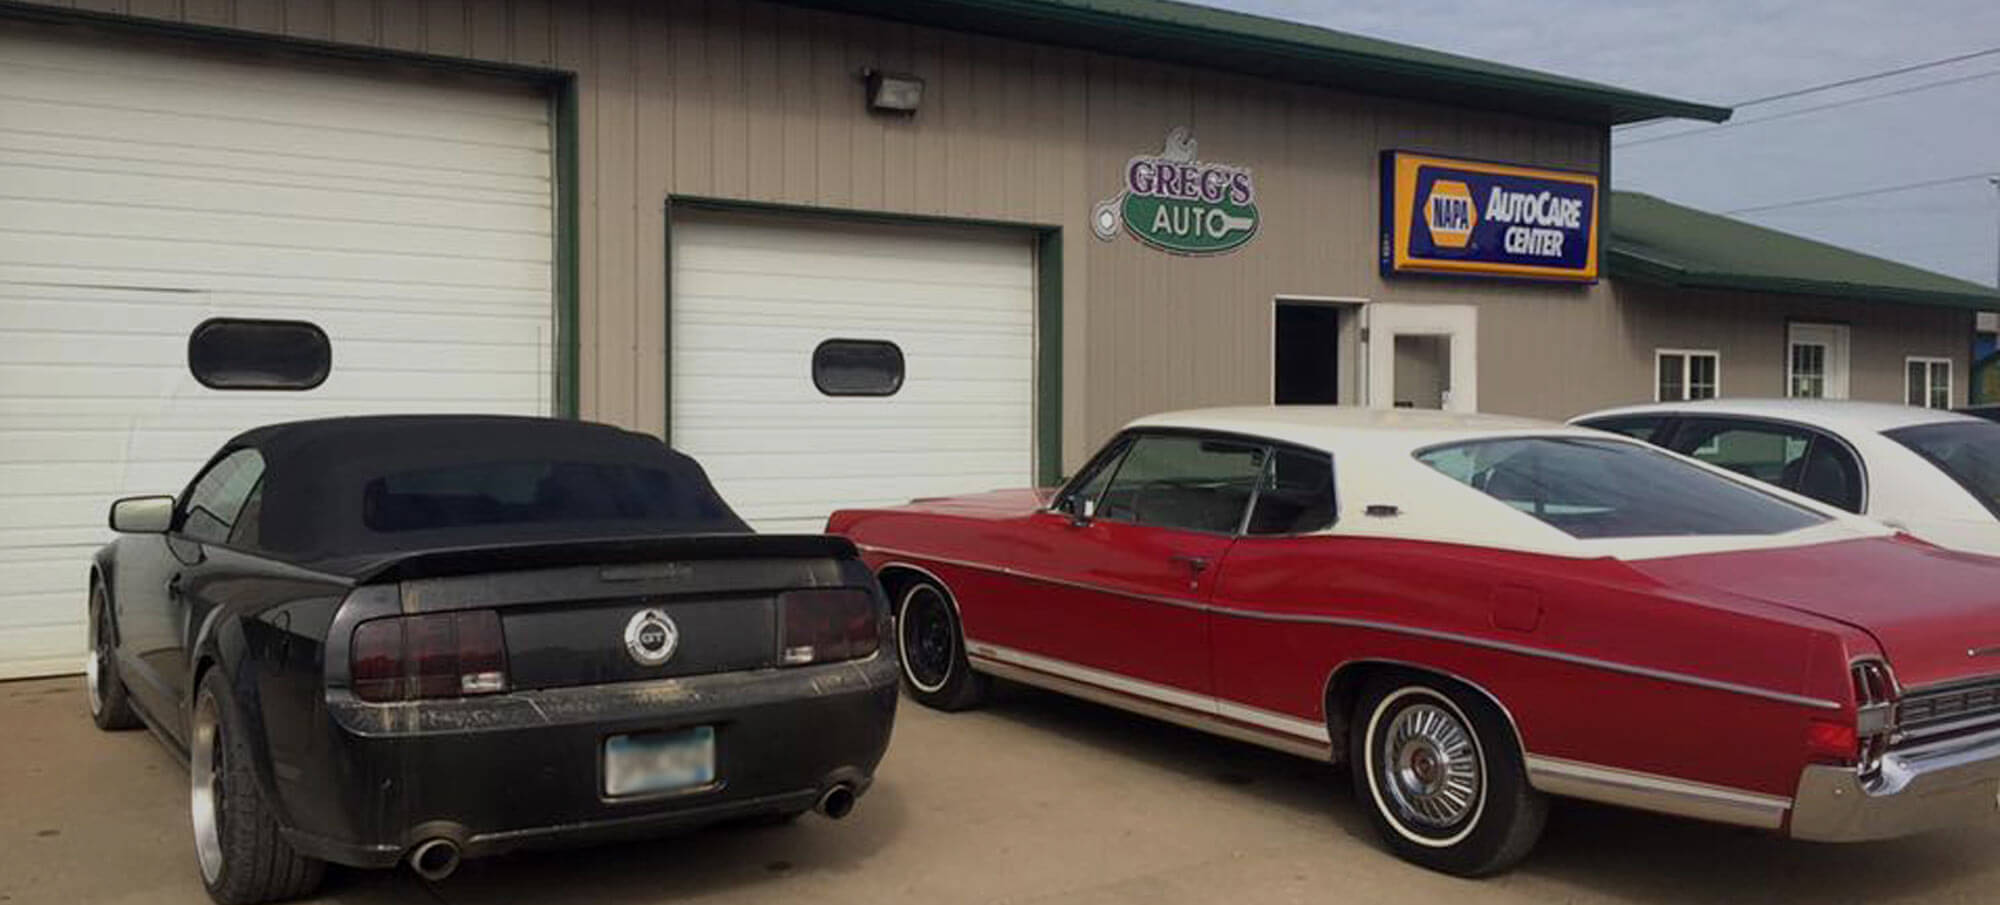 Exterior of Greg's Auto shop in Le Center with a mix of new, old, and classic cars parked in front of the auto bay doors